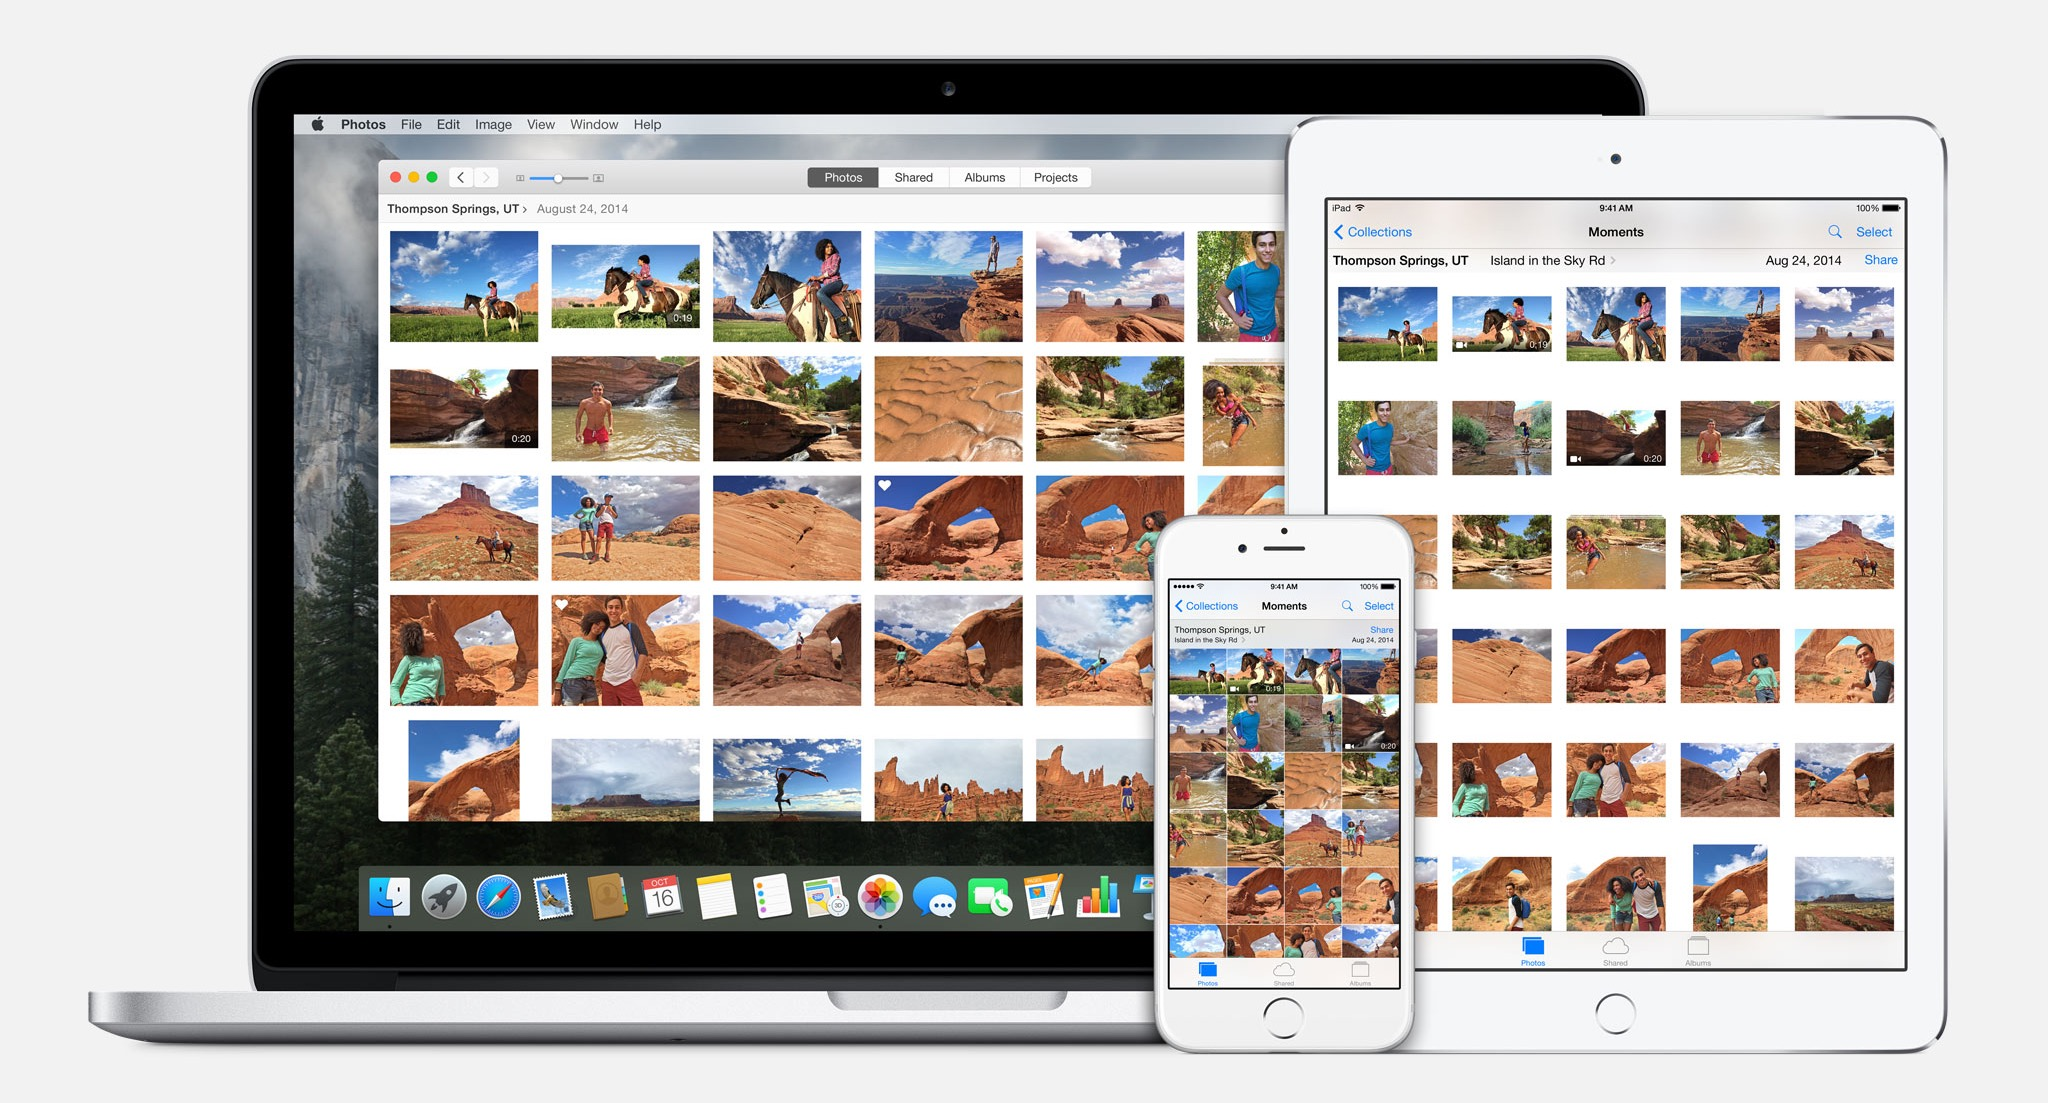 iCloud Photo Library Tip: Don't AirDrop Imported Camera Shots to Other Devices